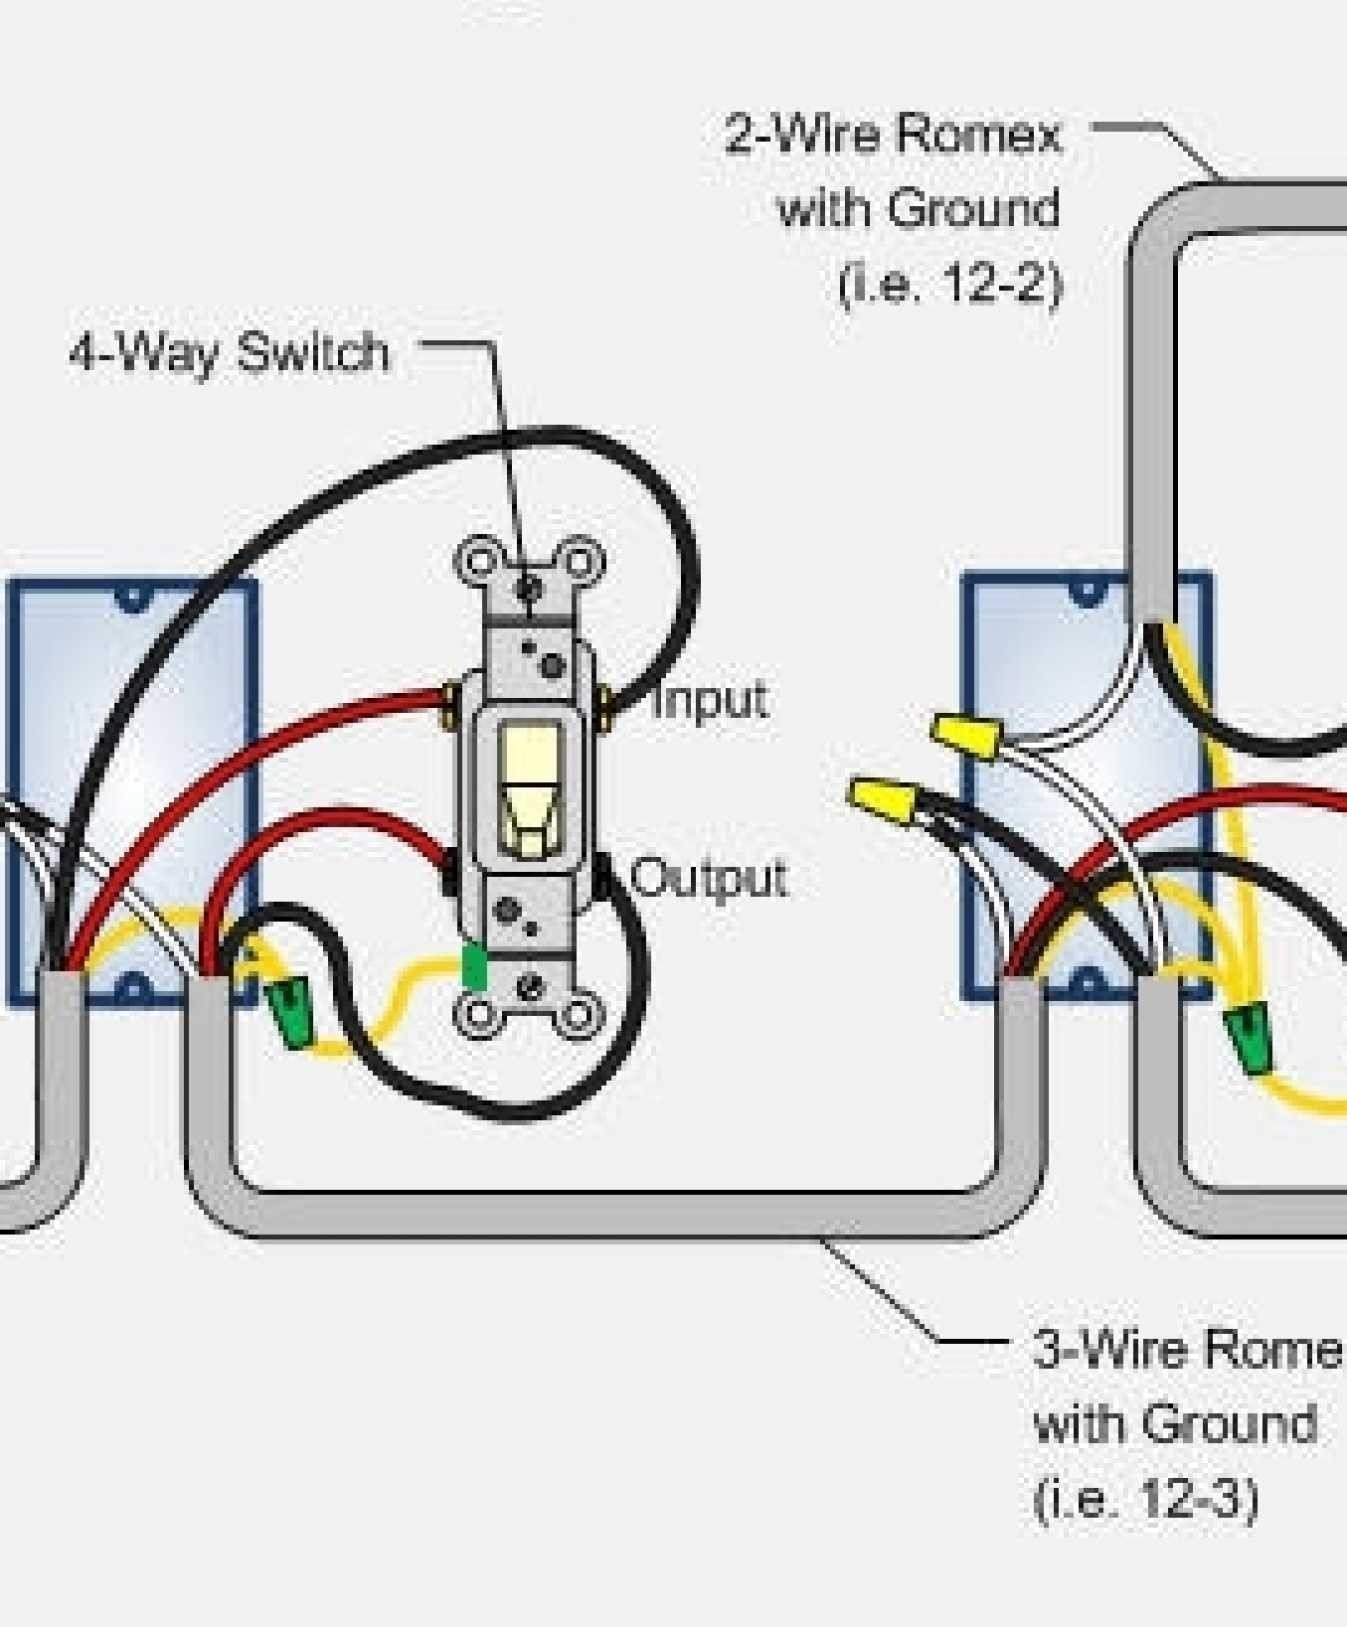 Wiring Diagram For 3 Way Switch Two Lights | Multiple Lights Wiring Diagram |  | Wiring Diagram